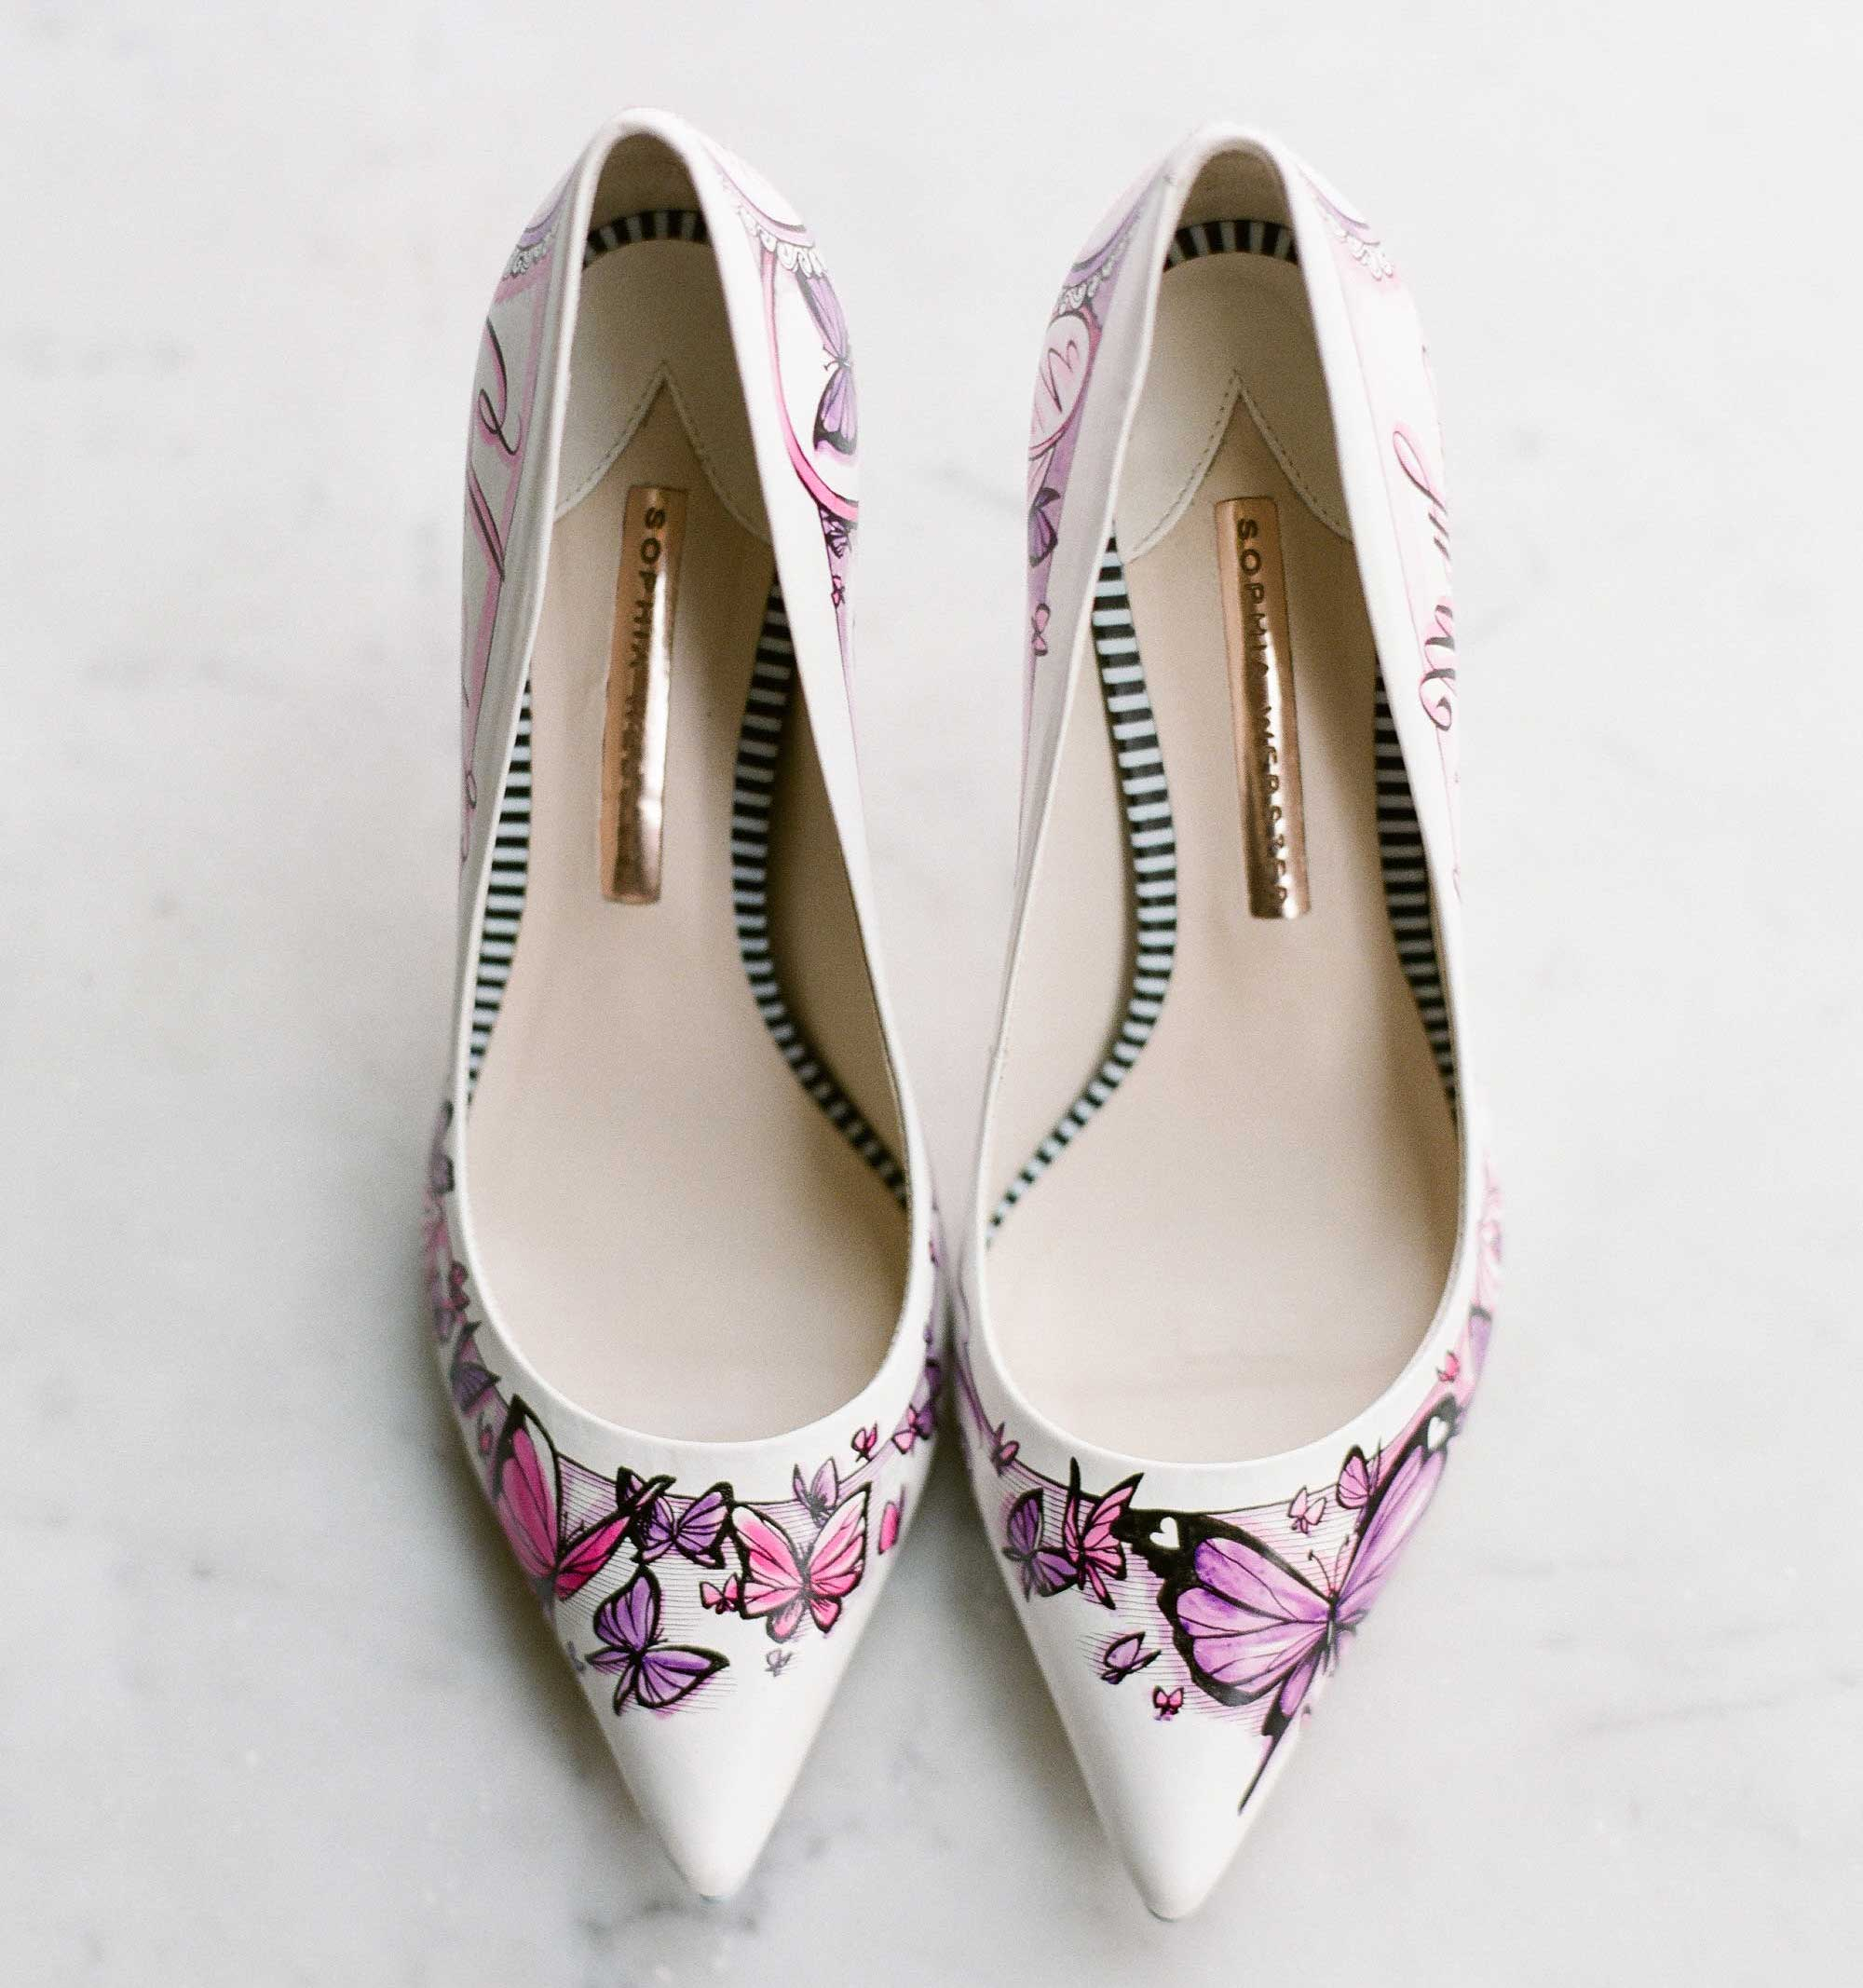 Pink and purple hand painted butterfly design on wedding shoes pumps